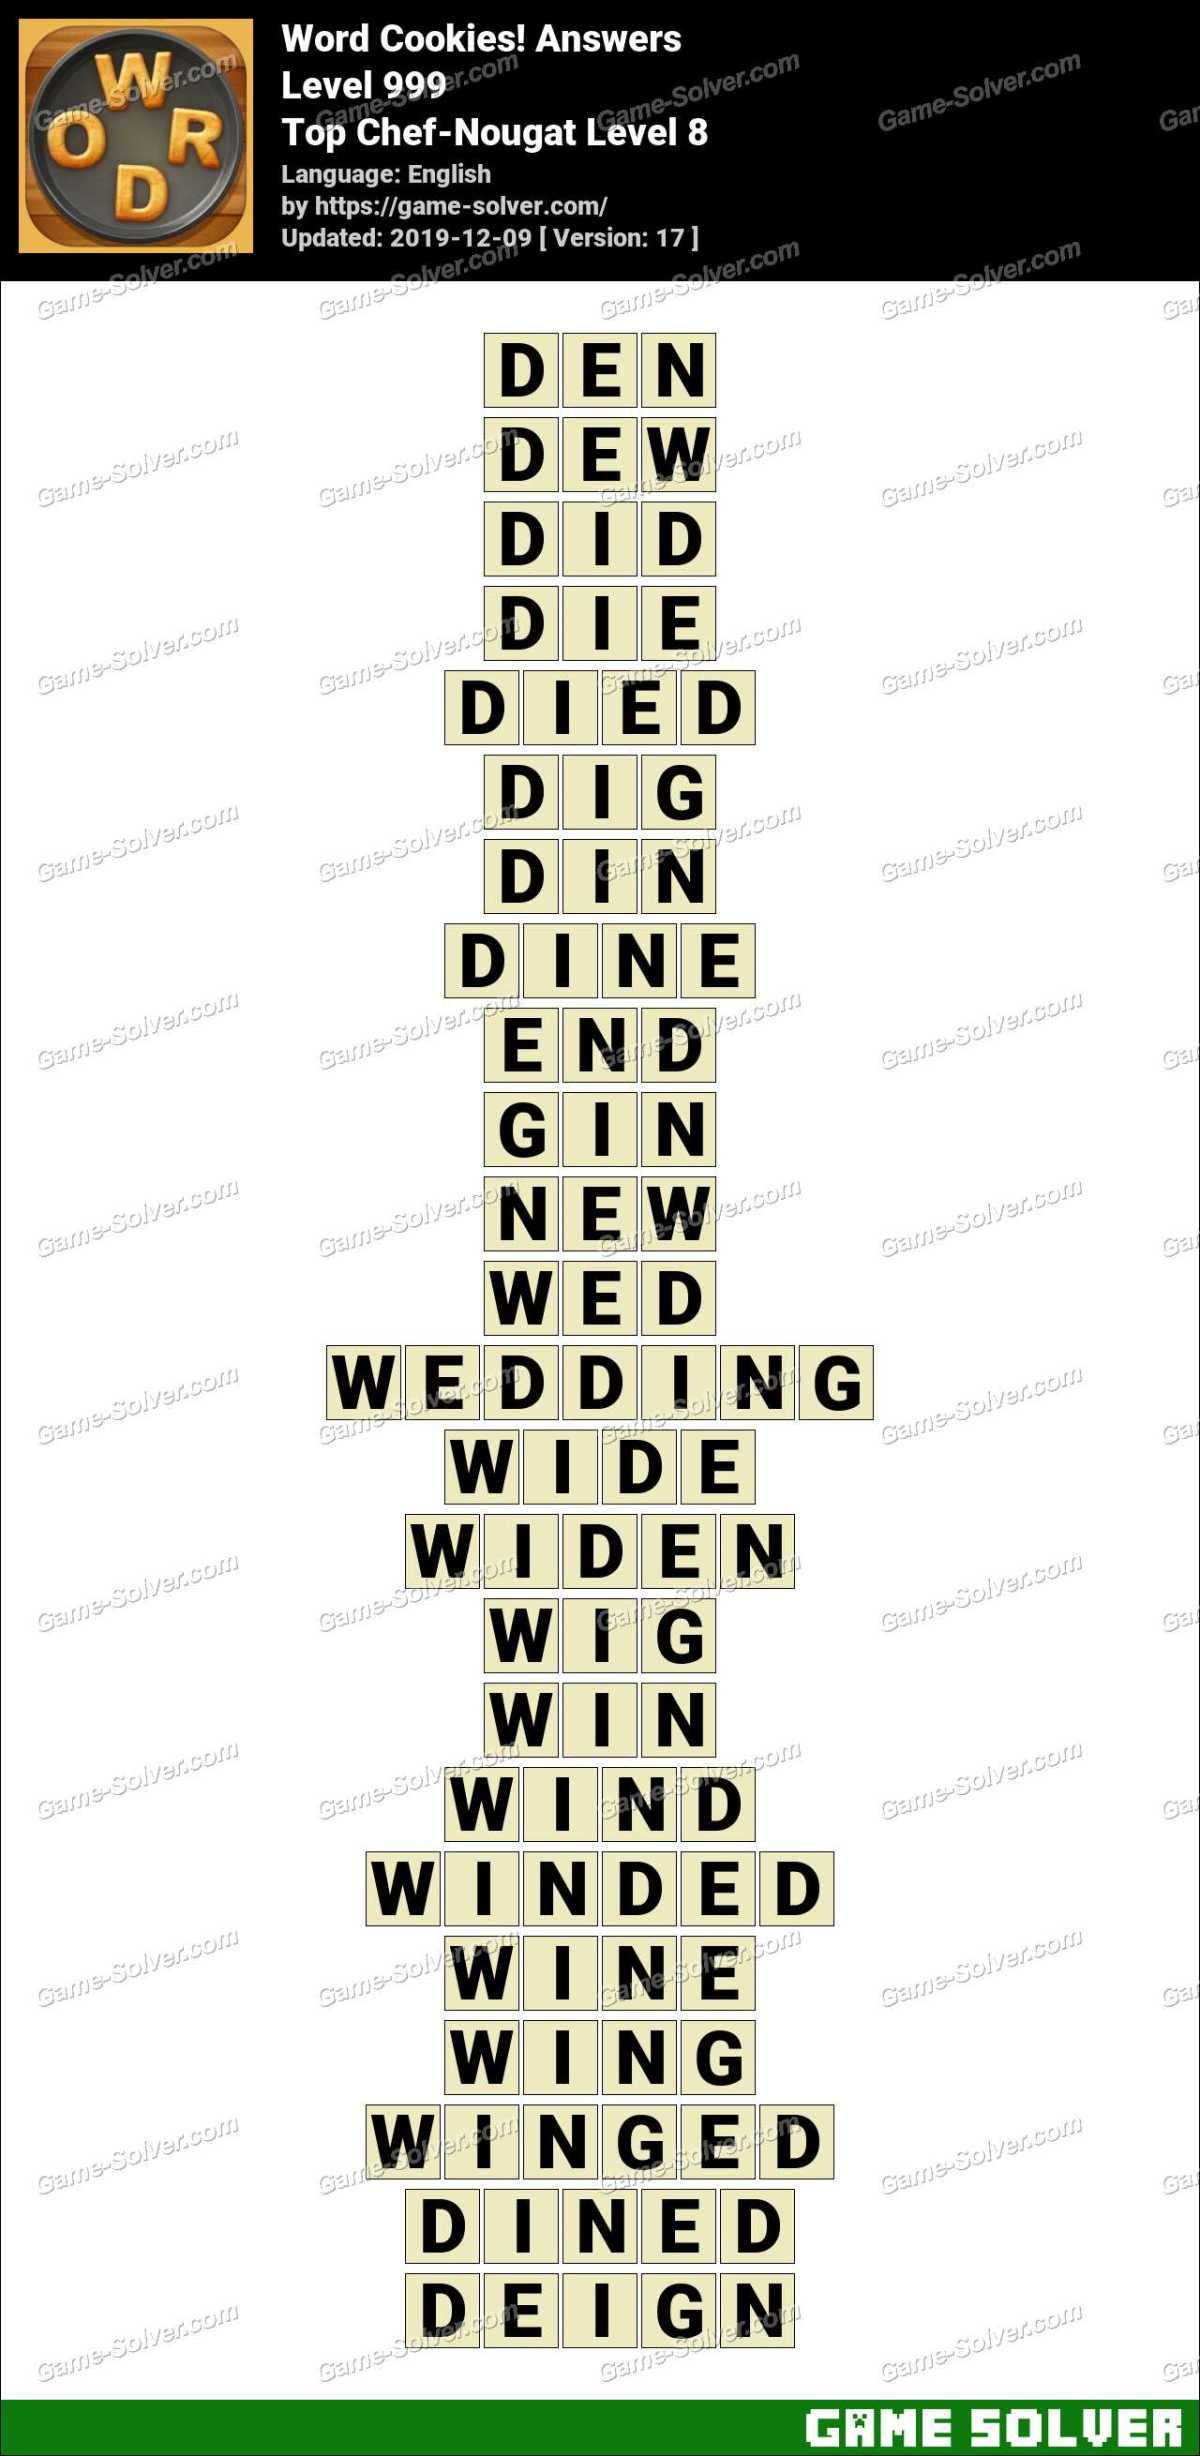 Word Cookies Top Chef-Nougat Level 8 Answers